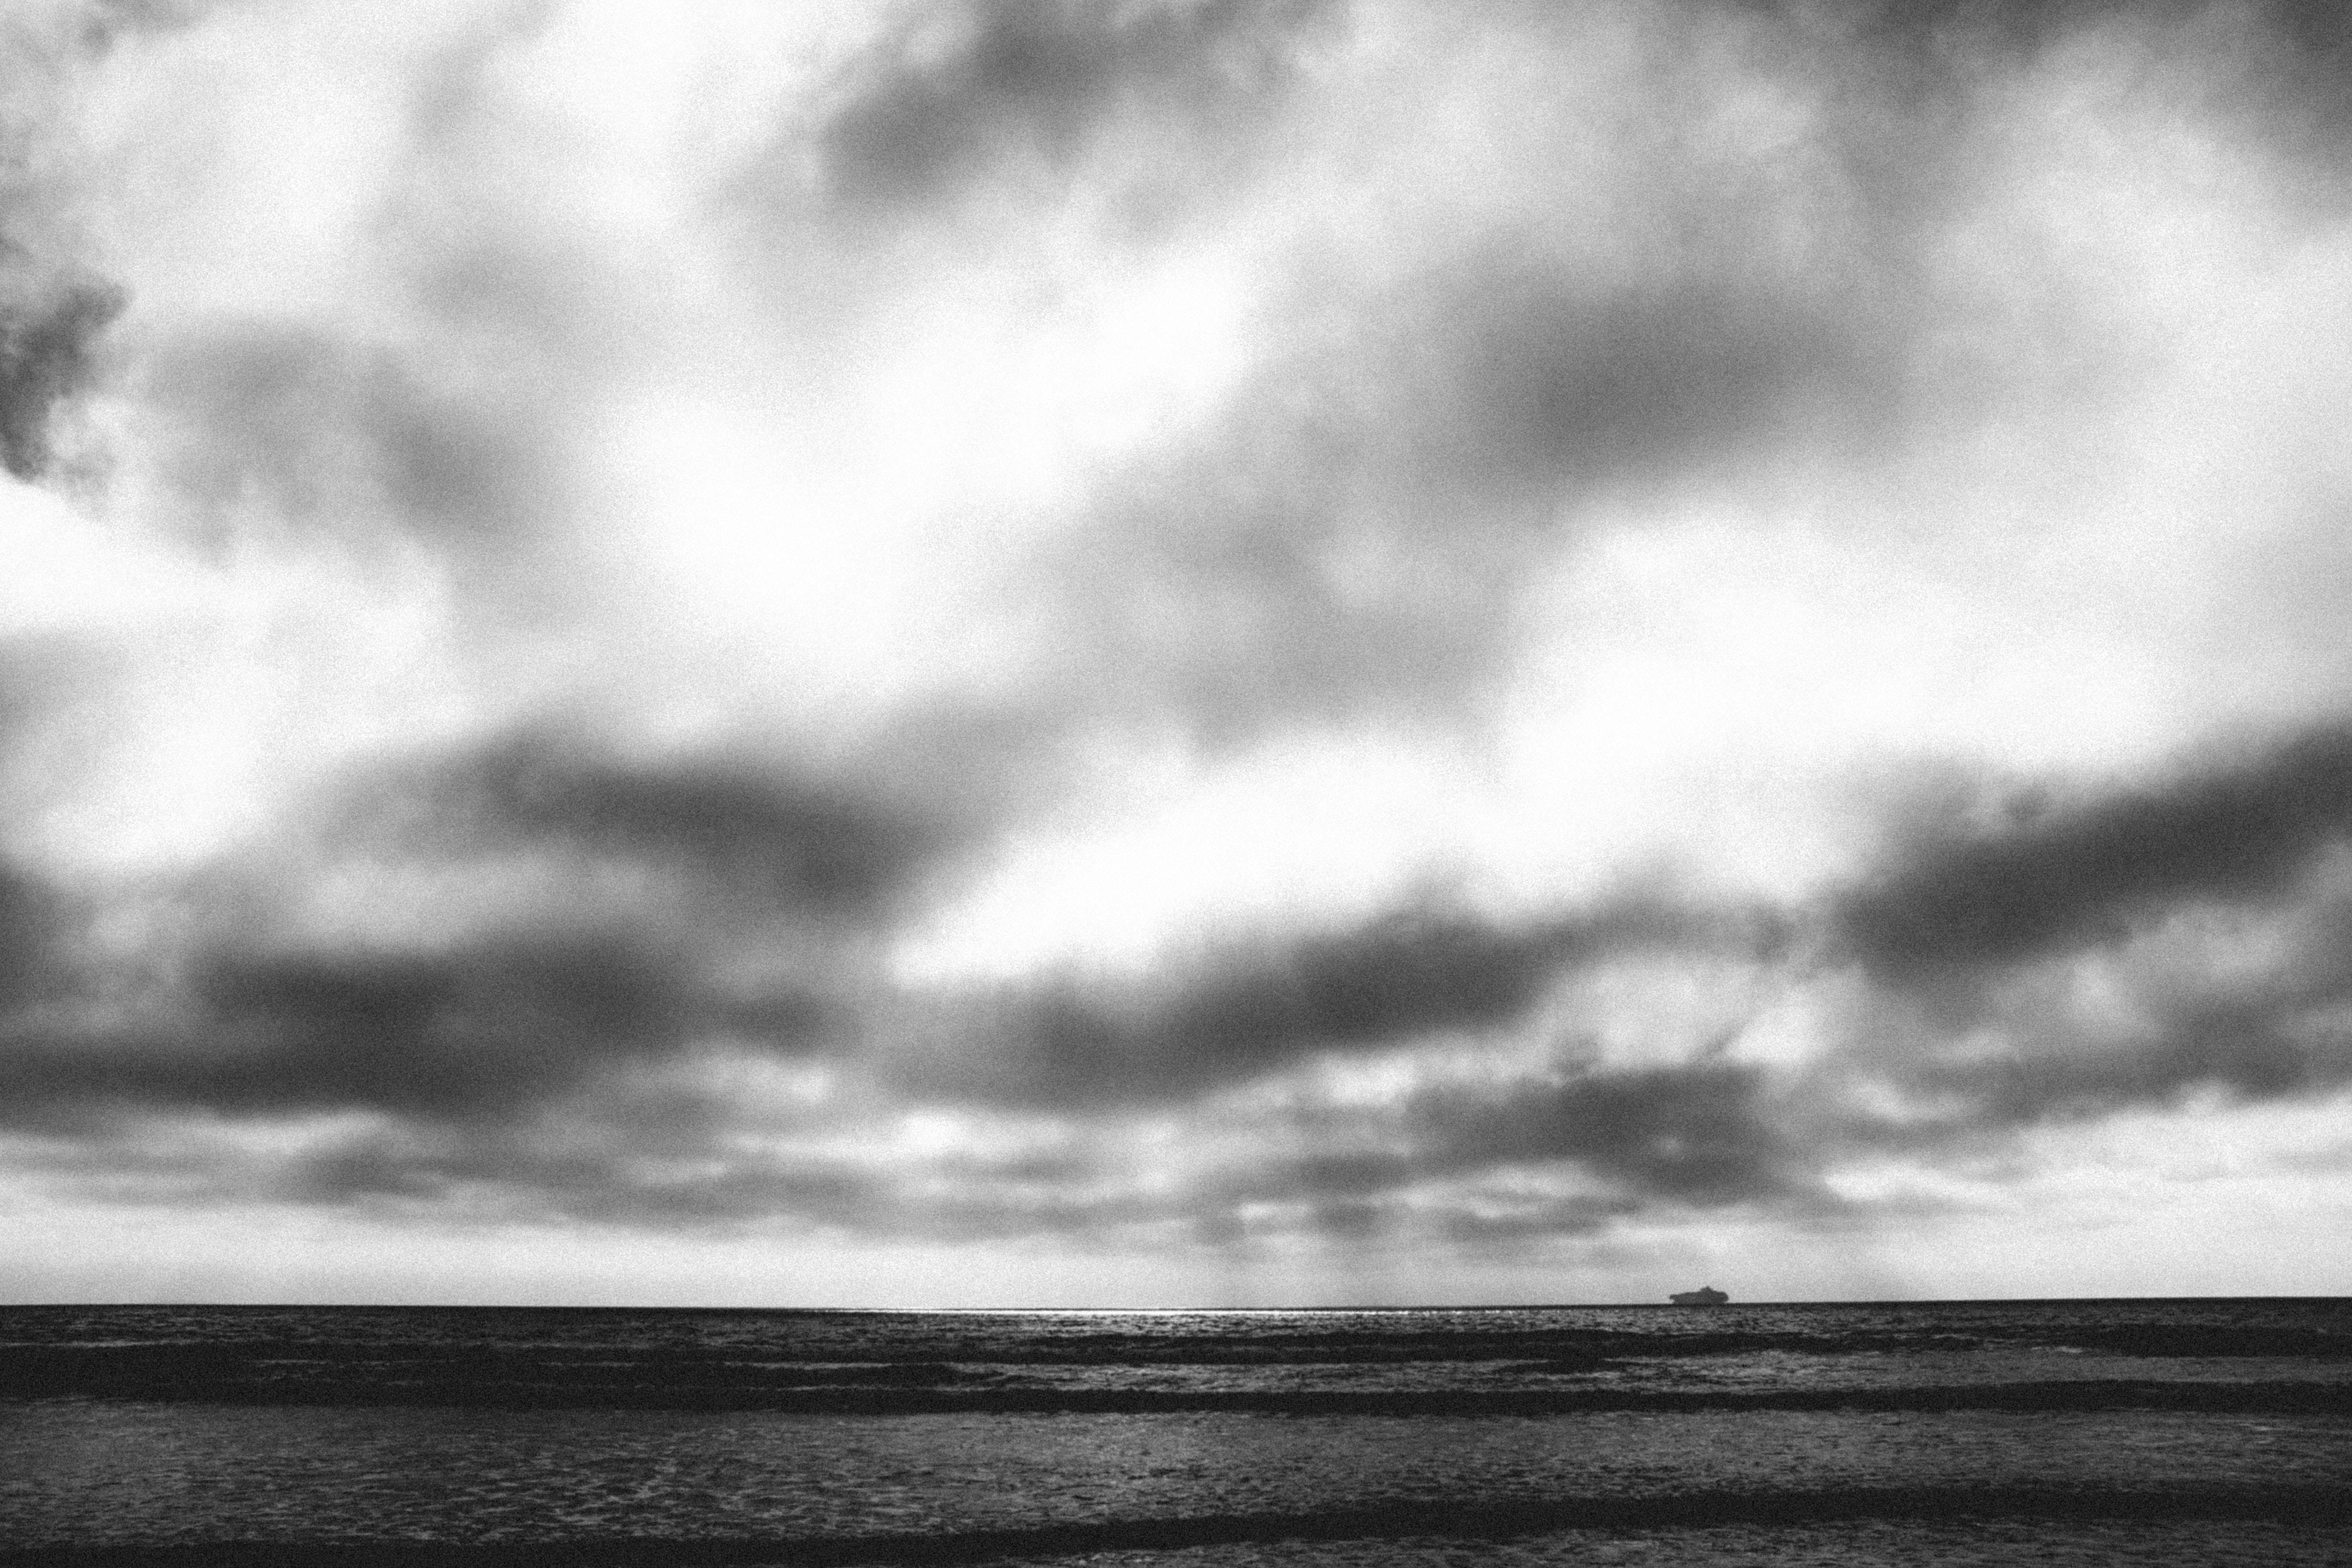 body of water under cloudy sky in grayscale photography